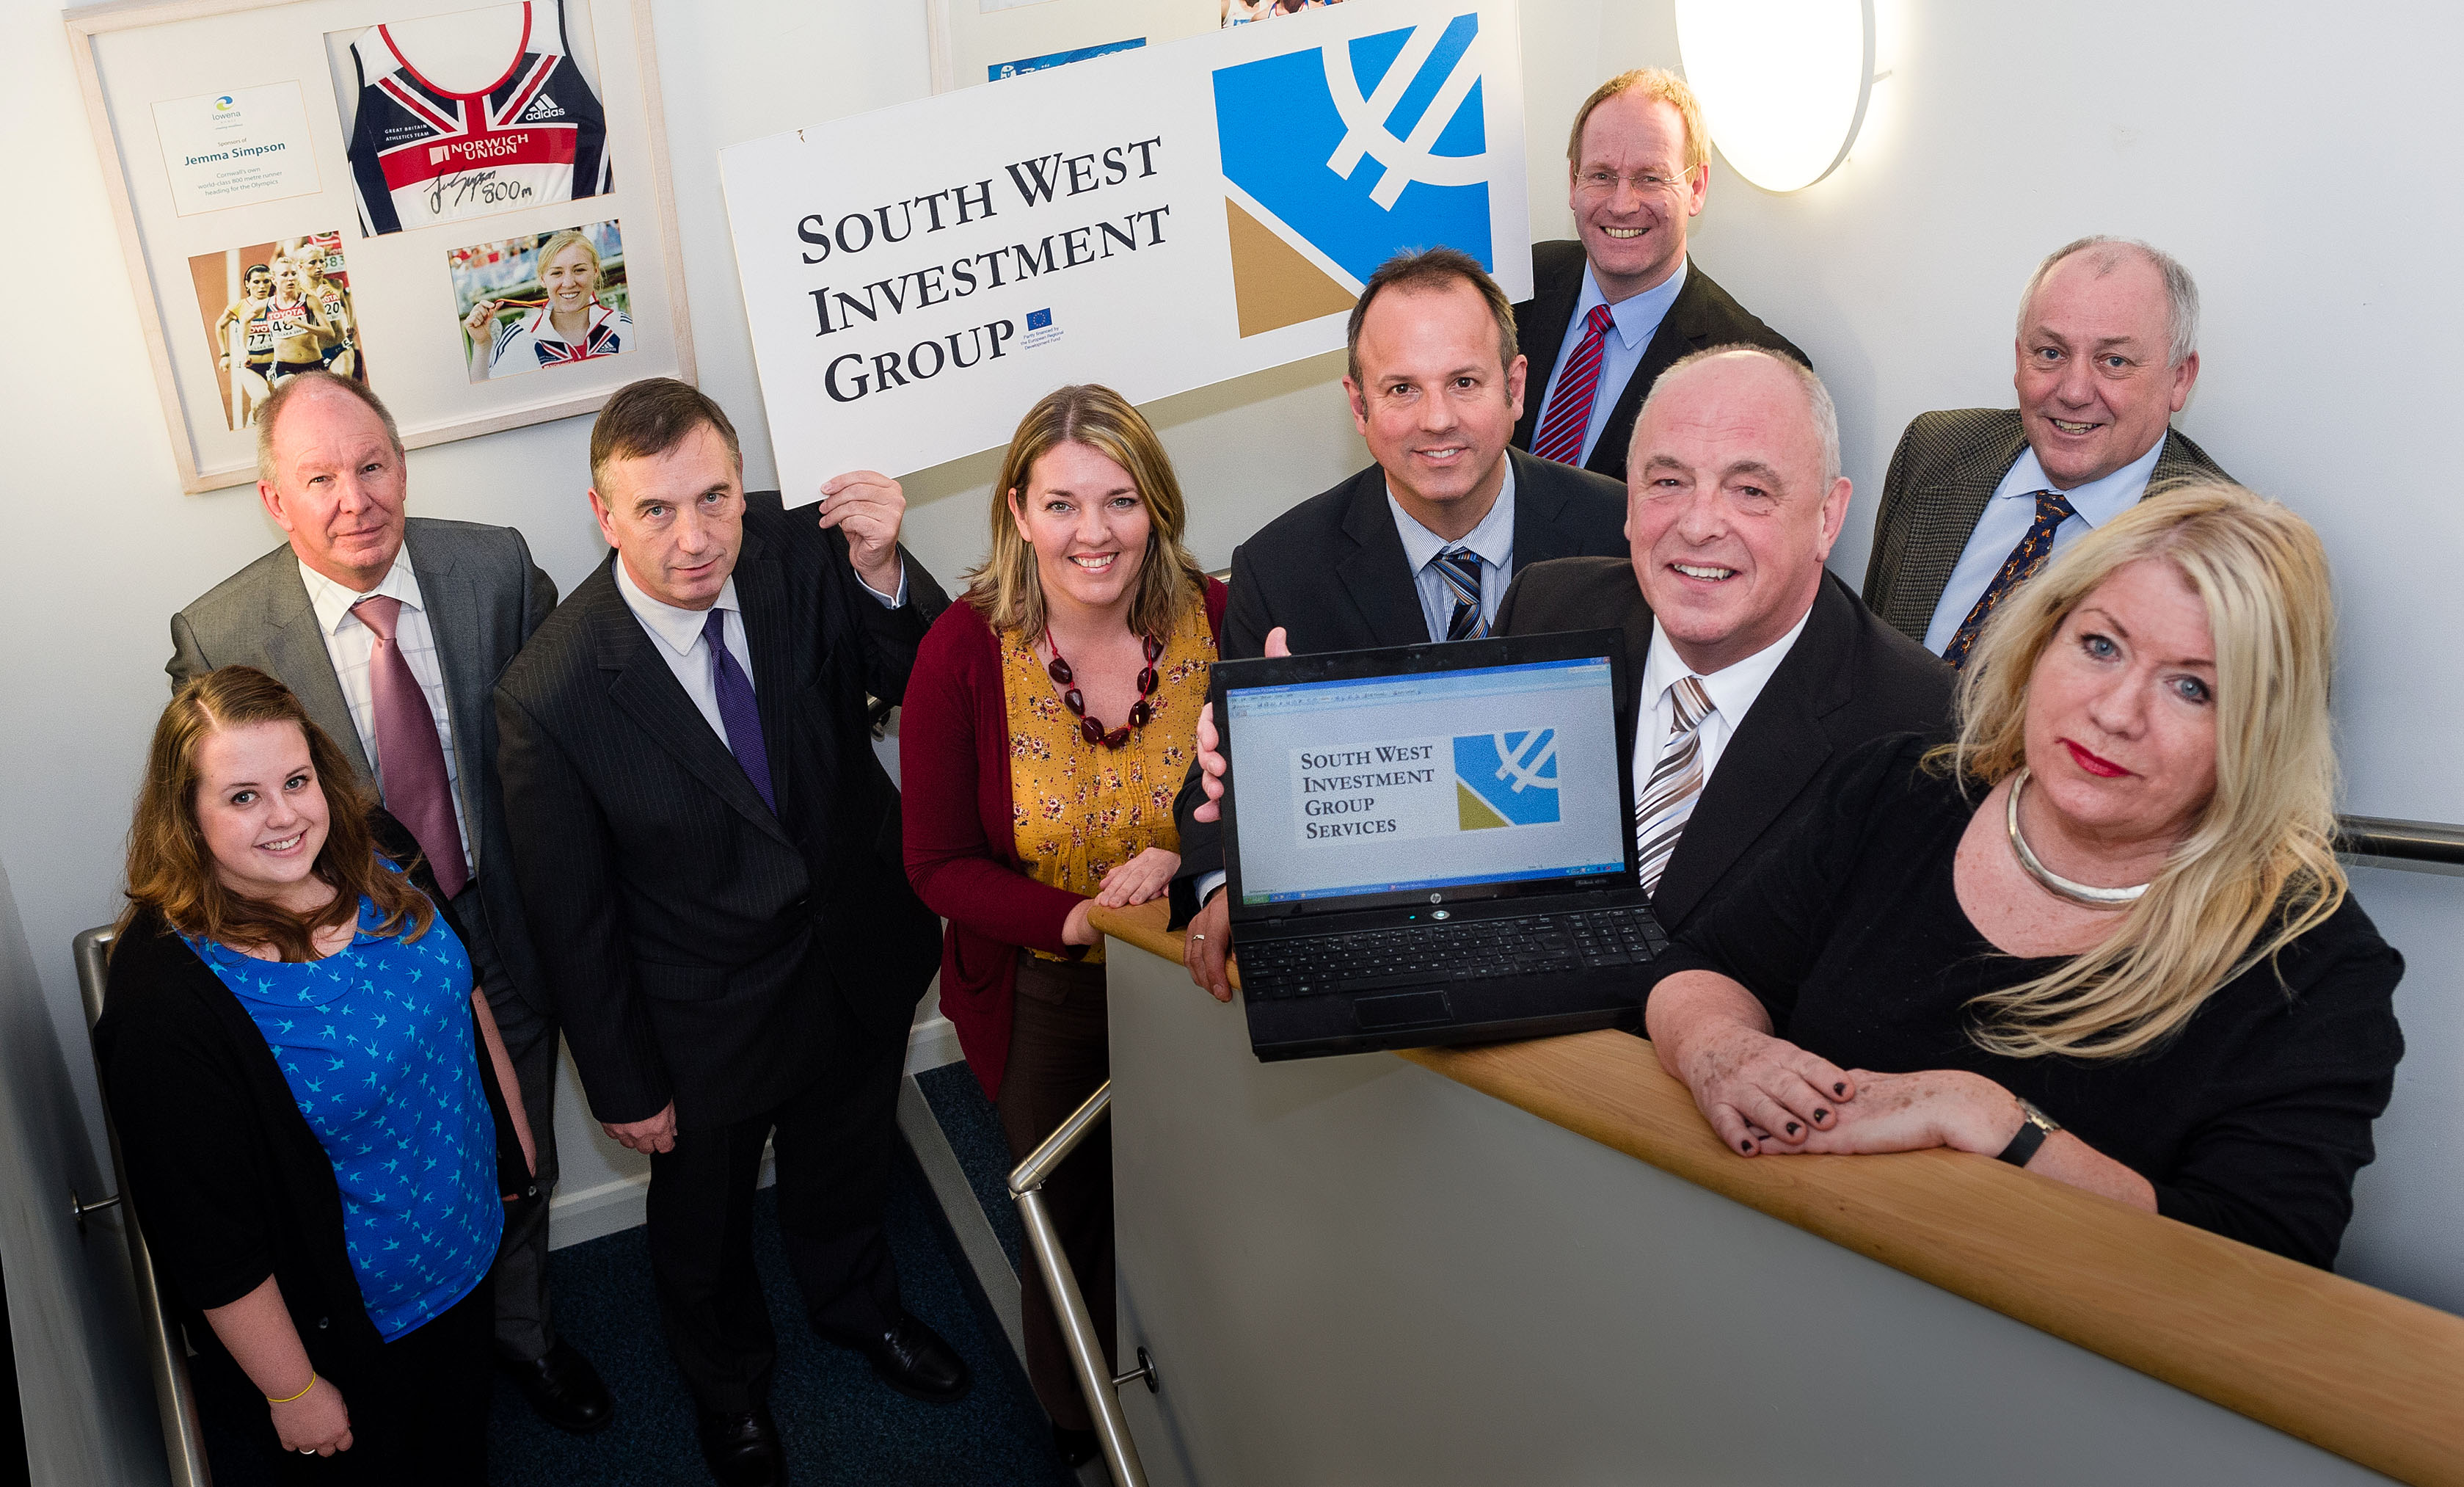 The new SWIG with Bristol Enterprise team, which was formed after Bristol Enterprise Development Fund became part of South West Investment Group.